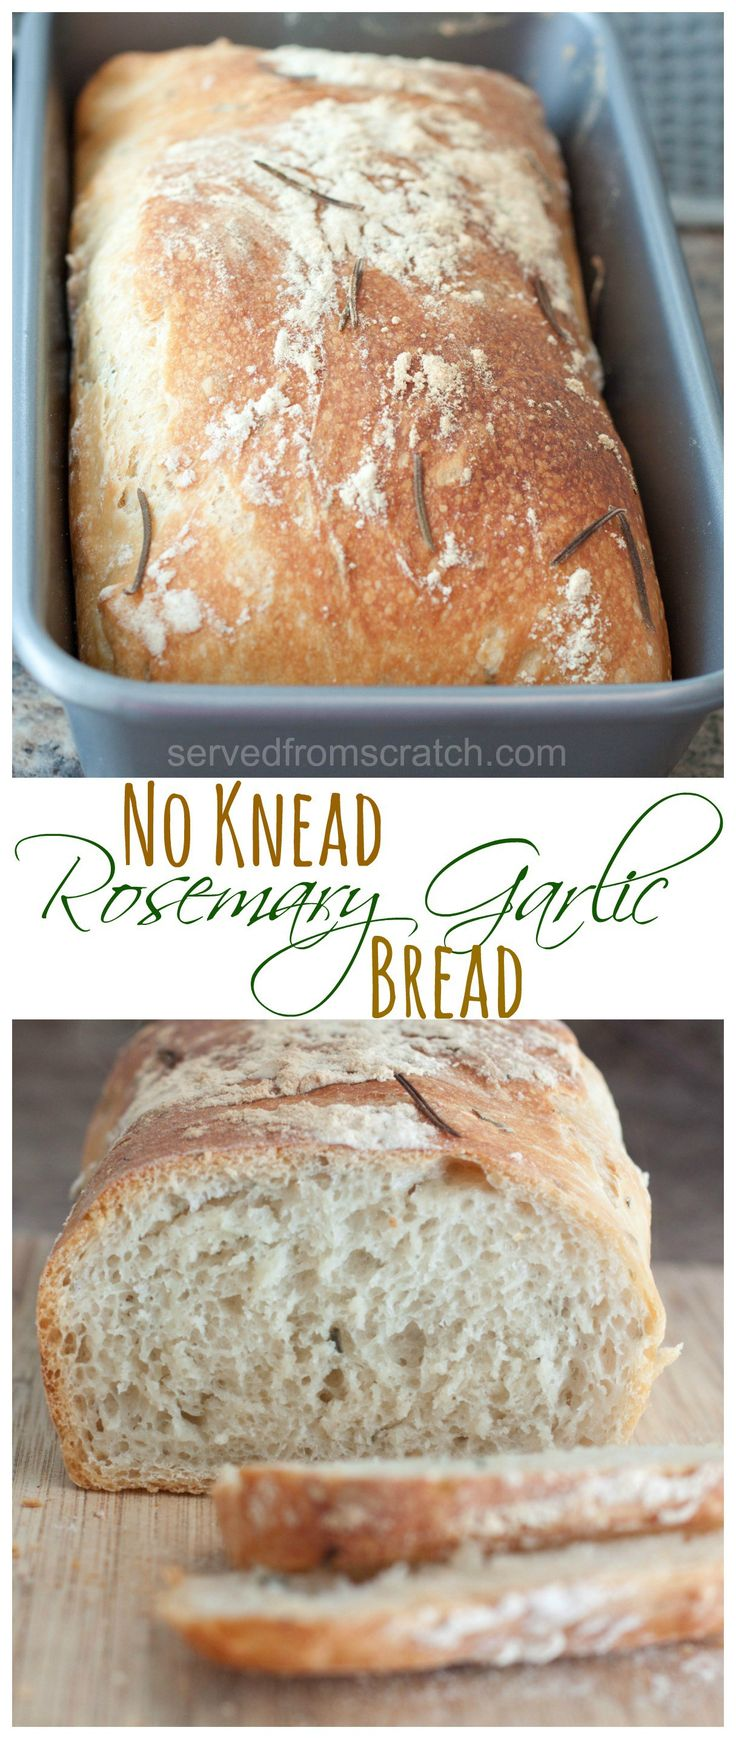 25+ best ideas about Breads on Pinterest | Bread recipes ...